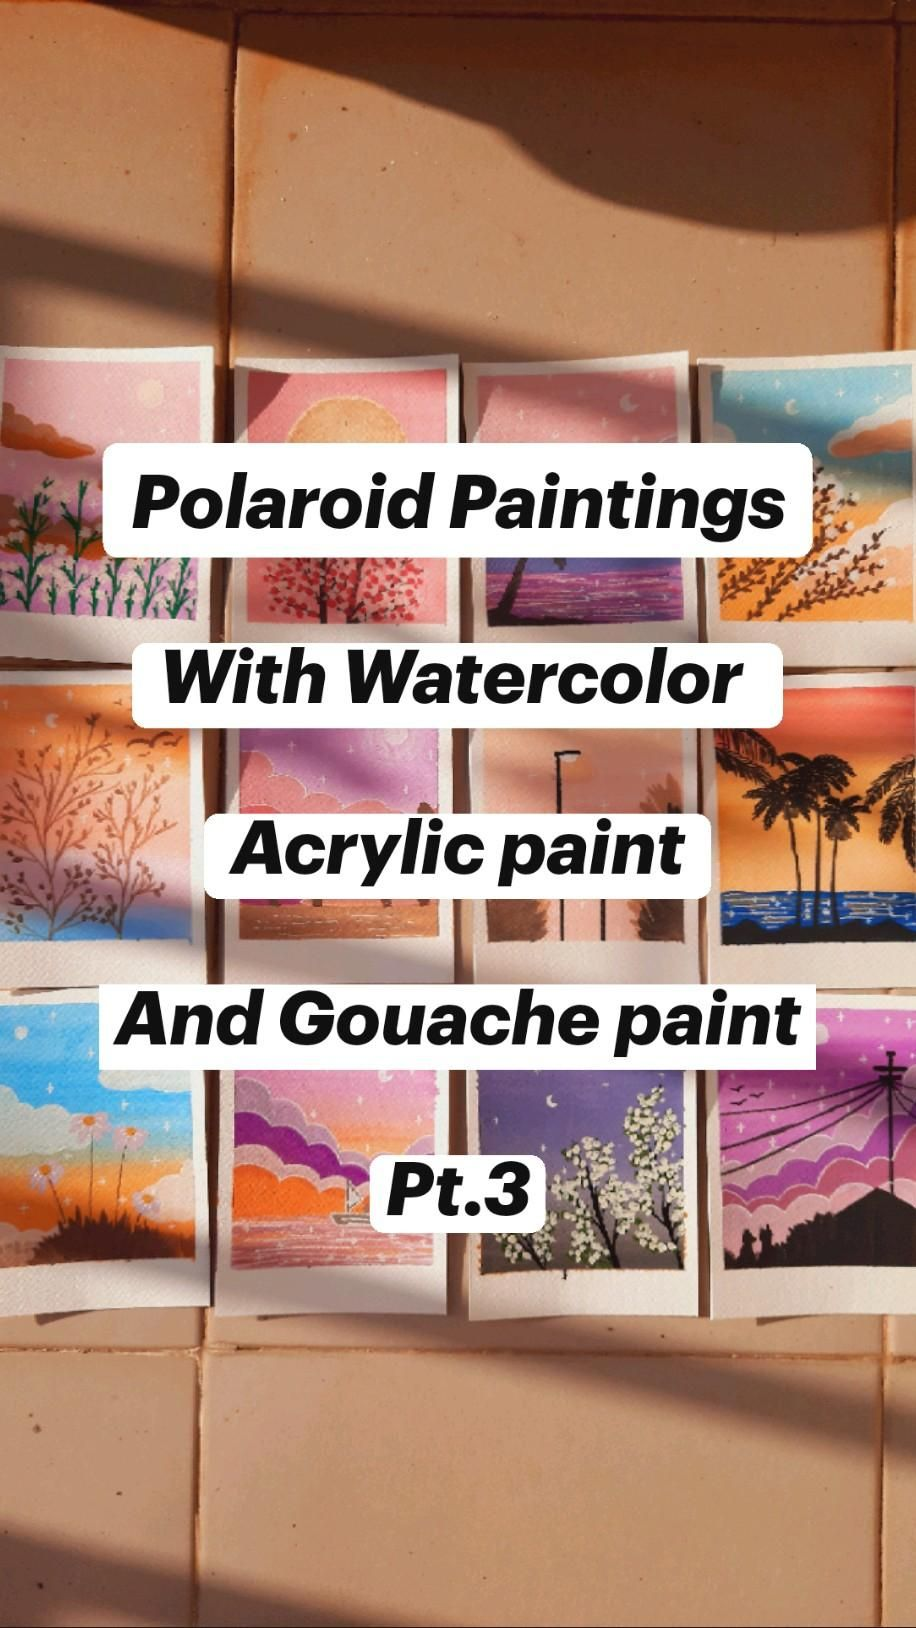 Polaroid Paintings  With Watercolor   Acrylic paint  And Gouache paint  Pt.3